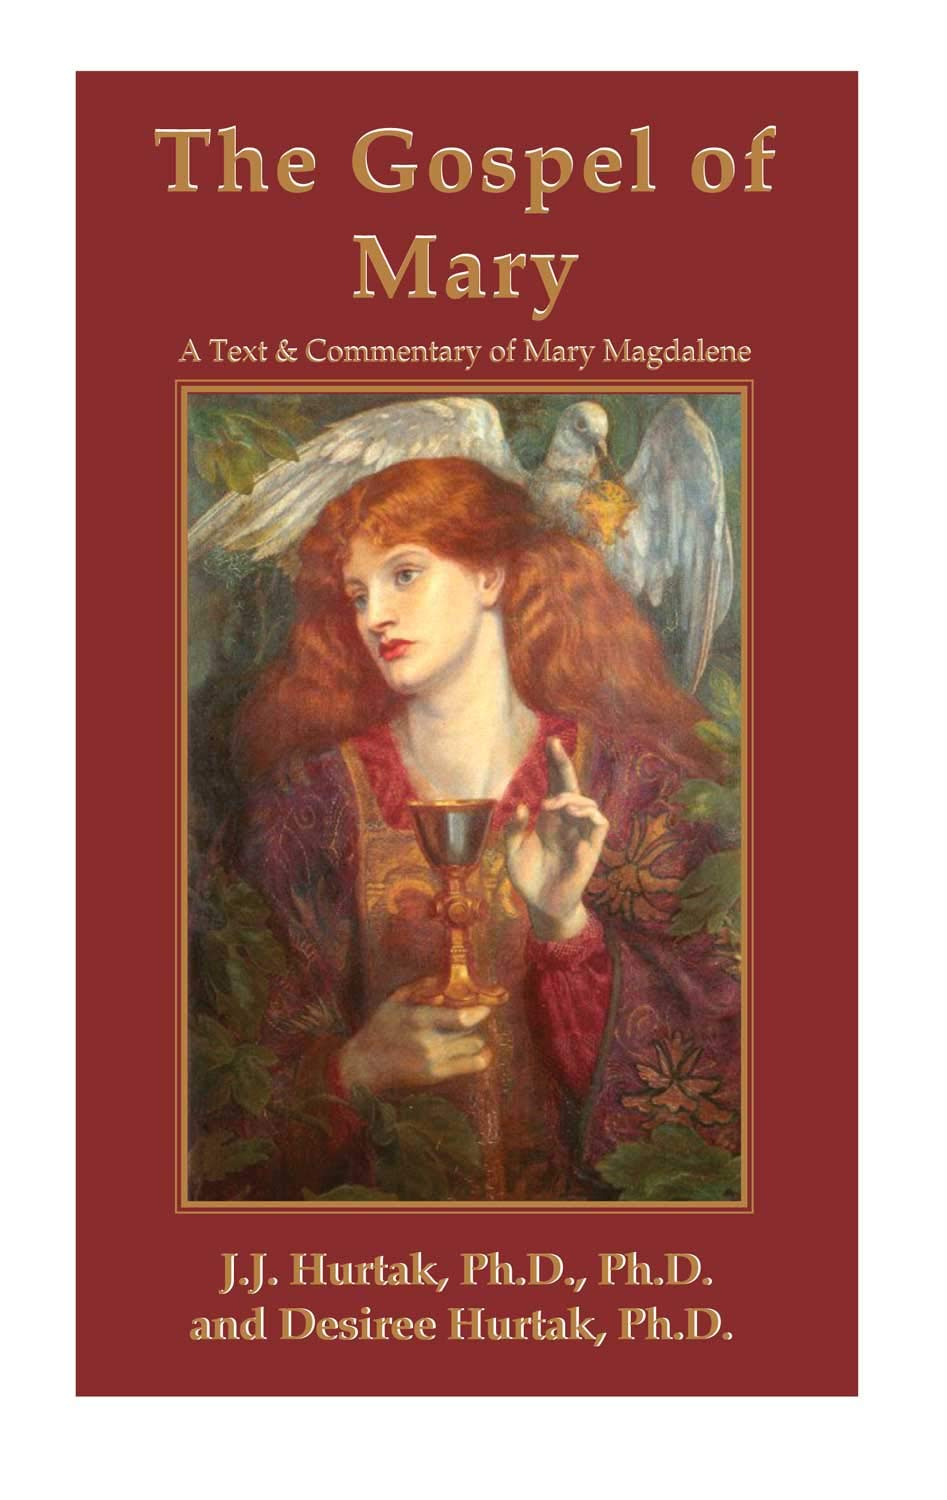 Read Online The Gospel of Mary: A Text of Mary Magdalene with Commentary (A Text of Mary Magdalene with Commentary) ebook